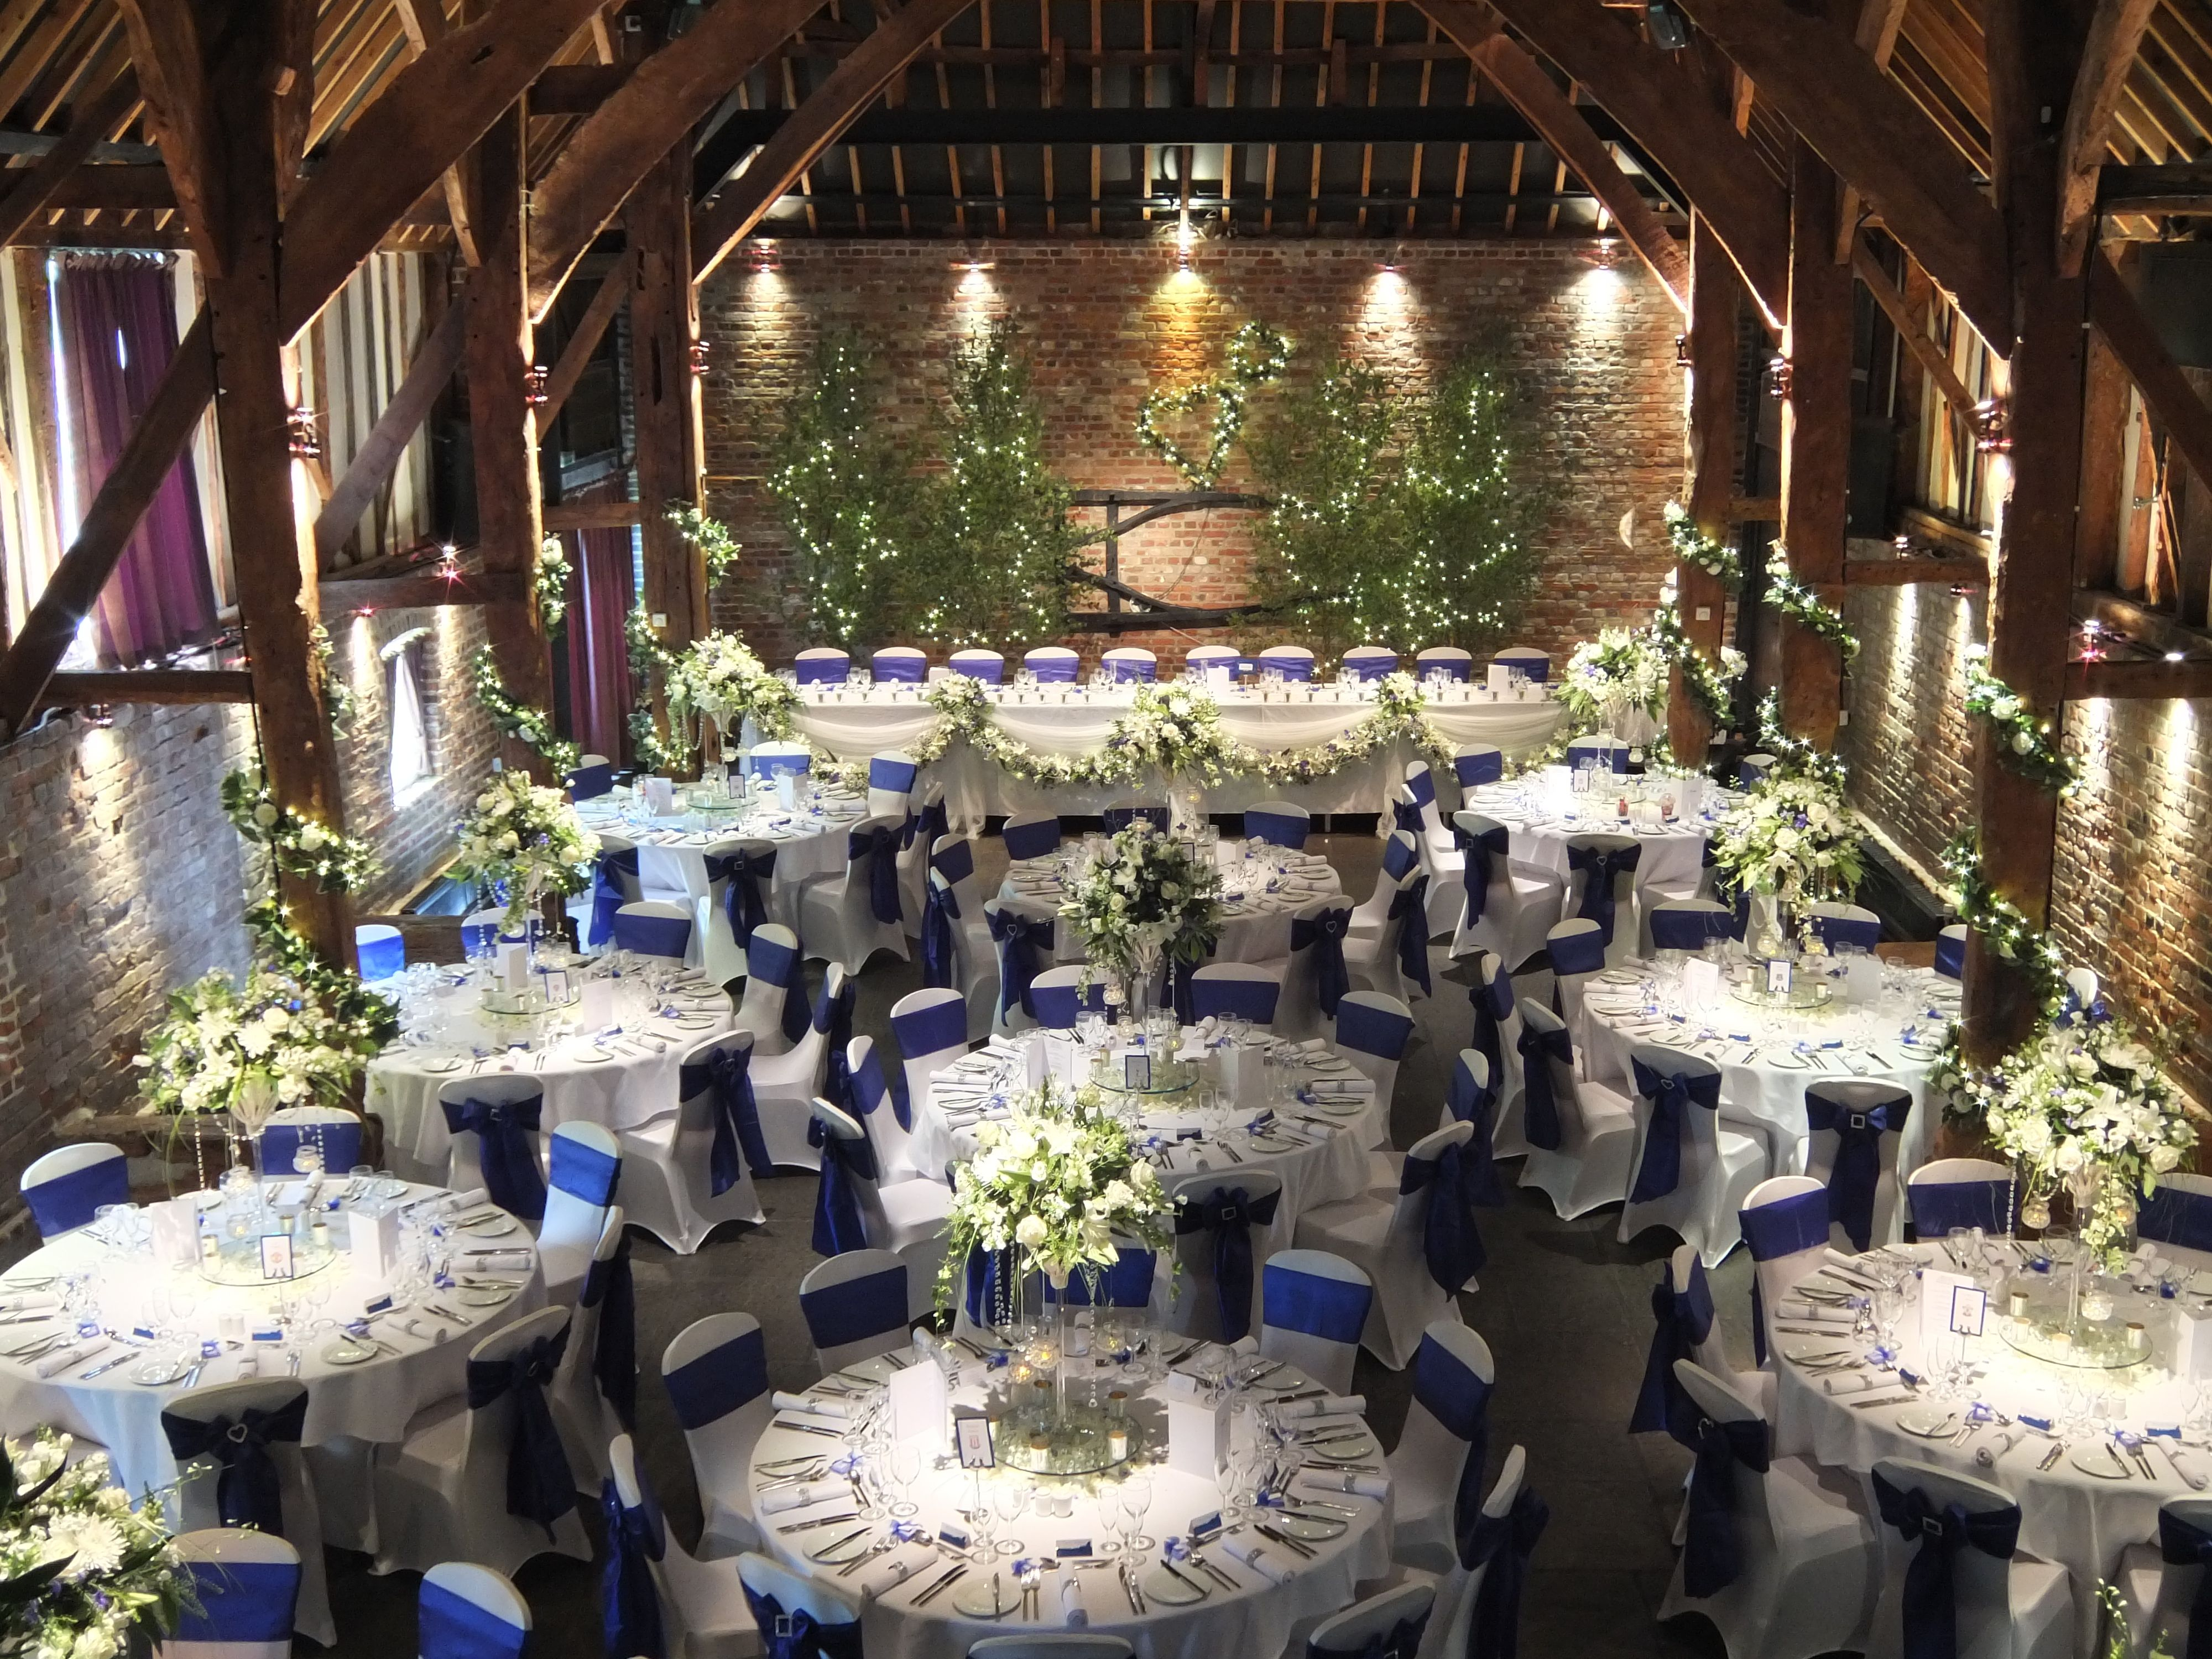 Forest themed wedding settings google search dream wedding forest themed wedding settings google search dream wedding pinterest barn weddings wedding venues and wedding junglespirit Image collections